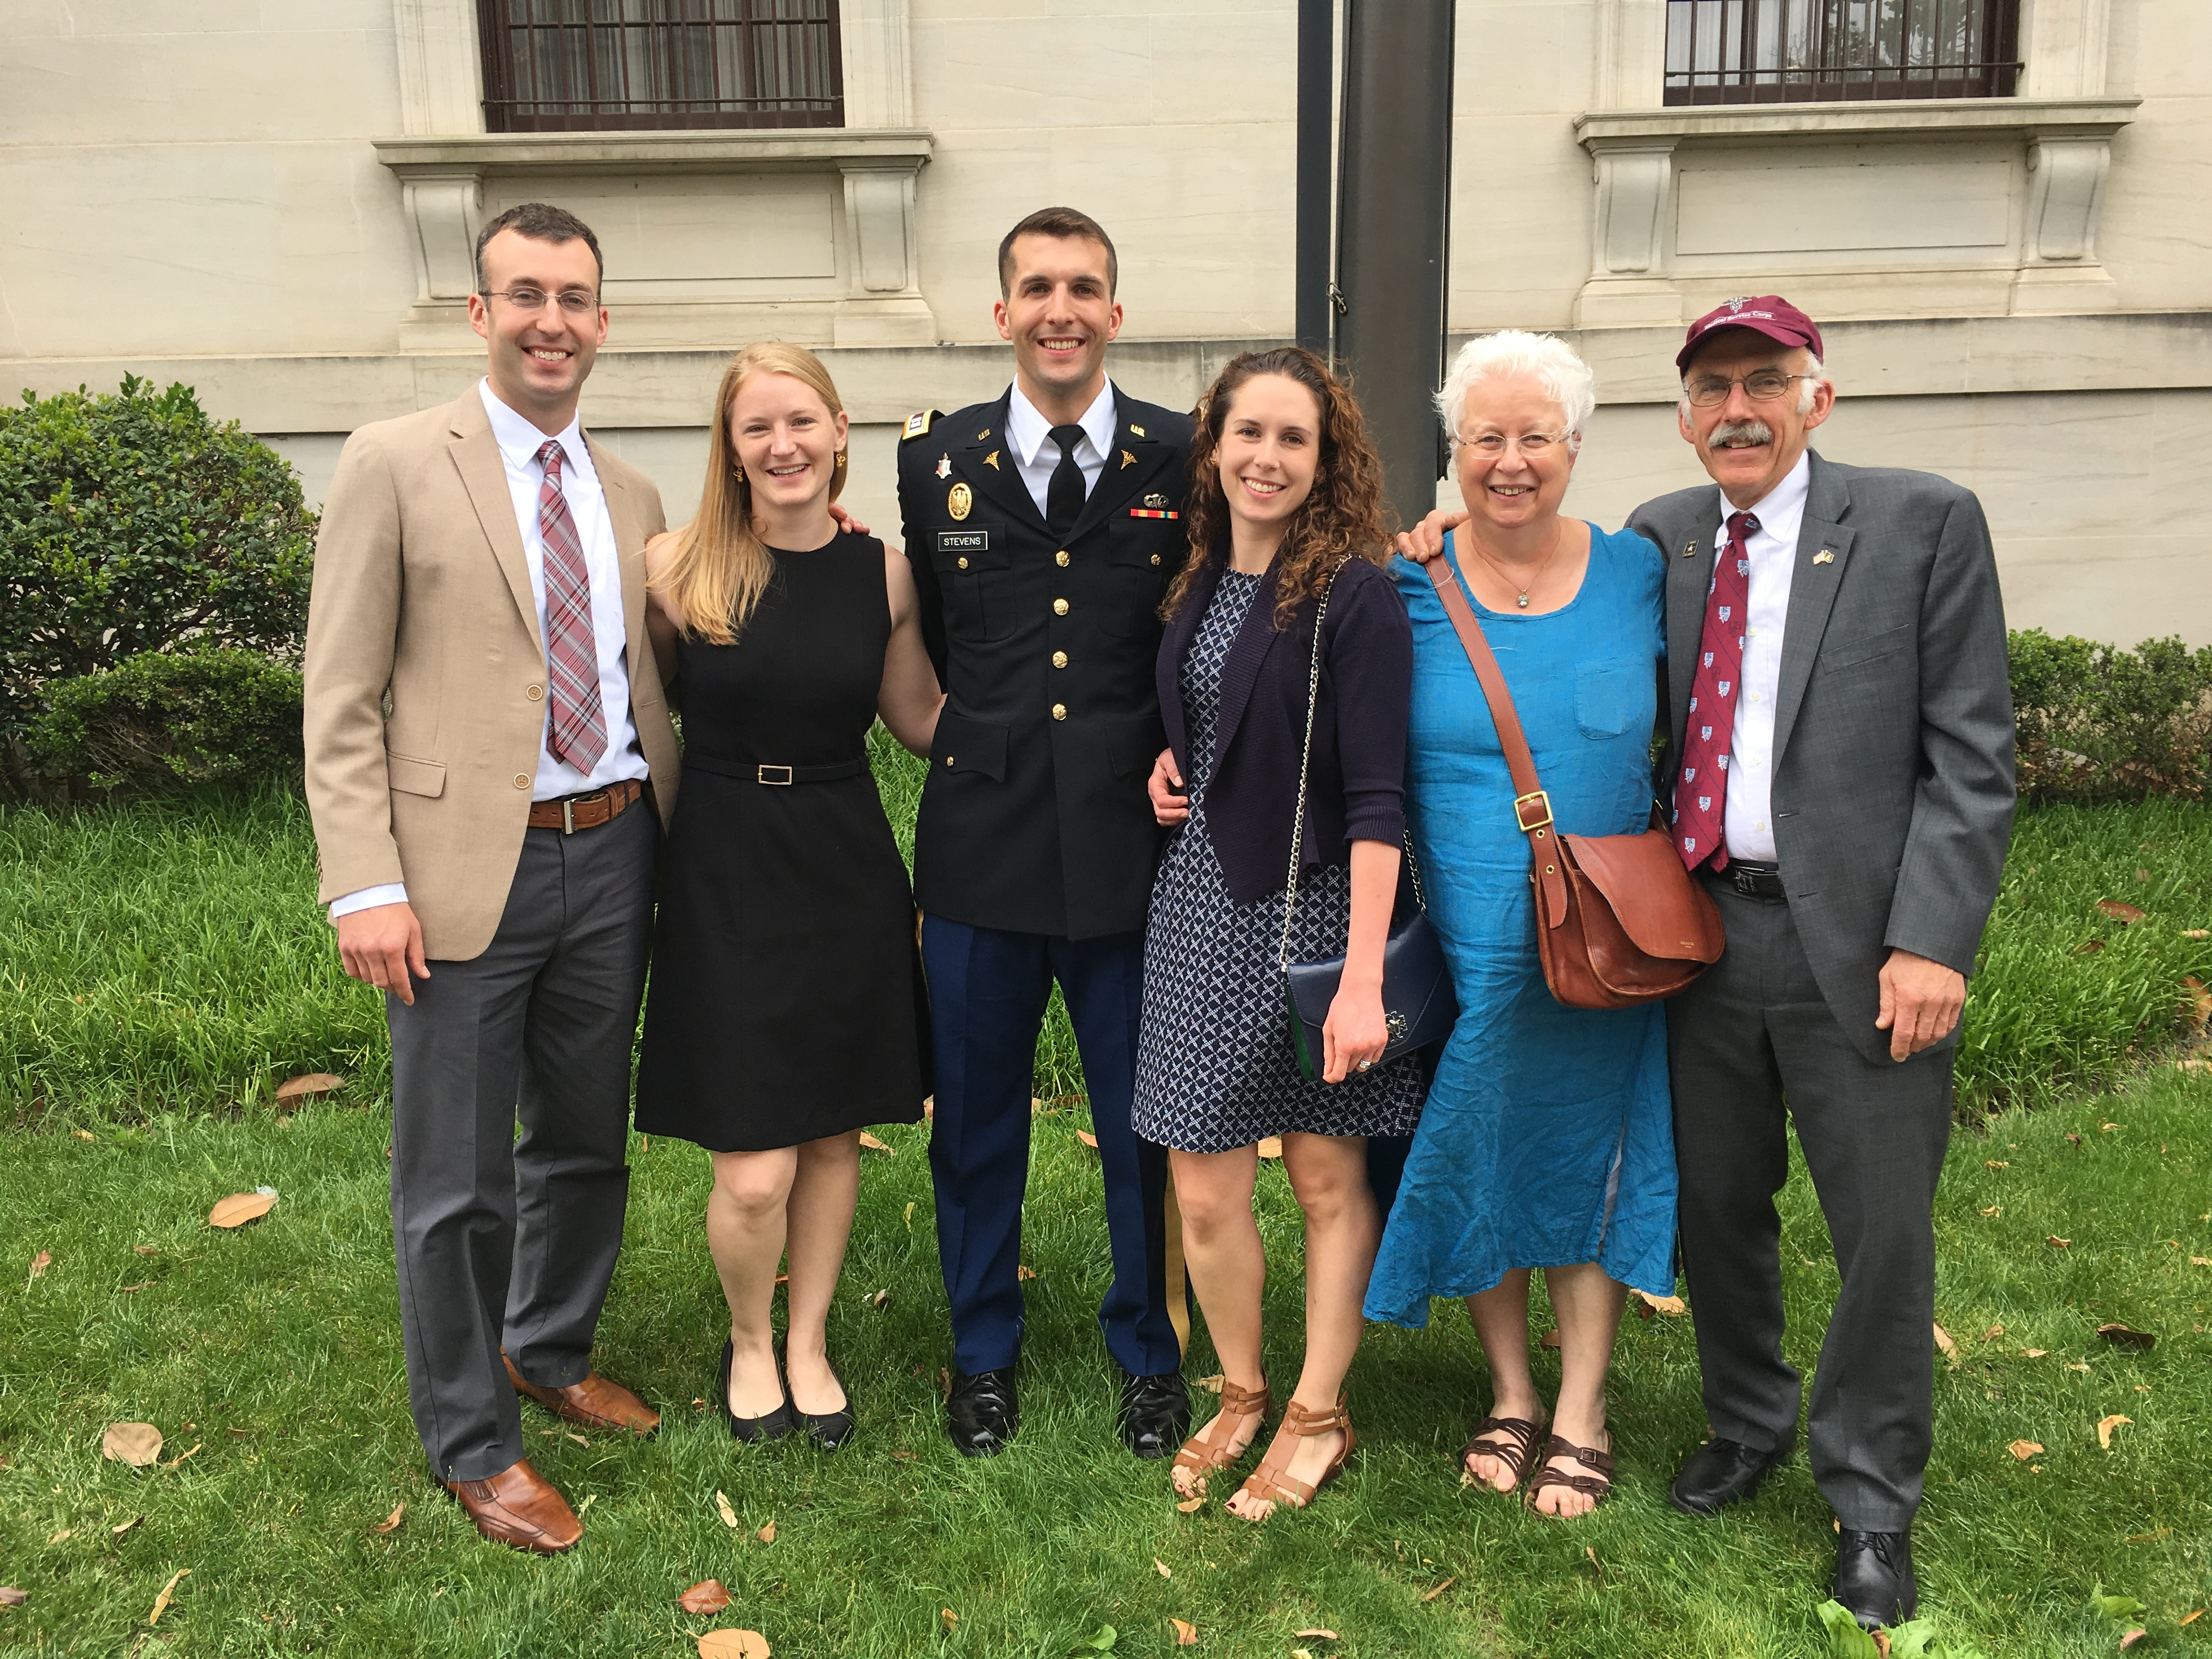 Nancy Berube at younger son Sam's 27, med school graduation and commissioning as a captain.